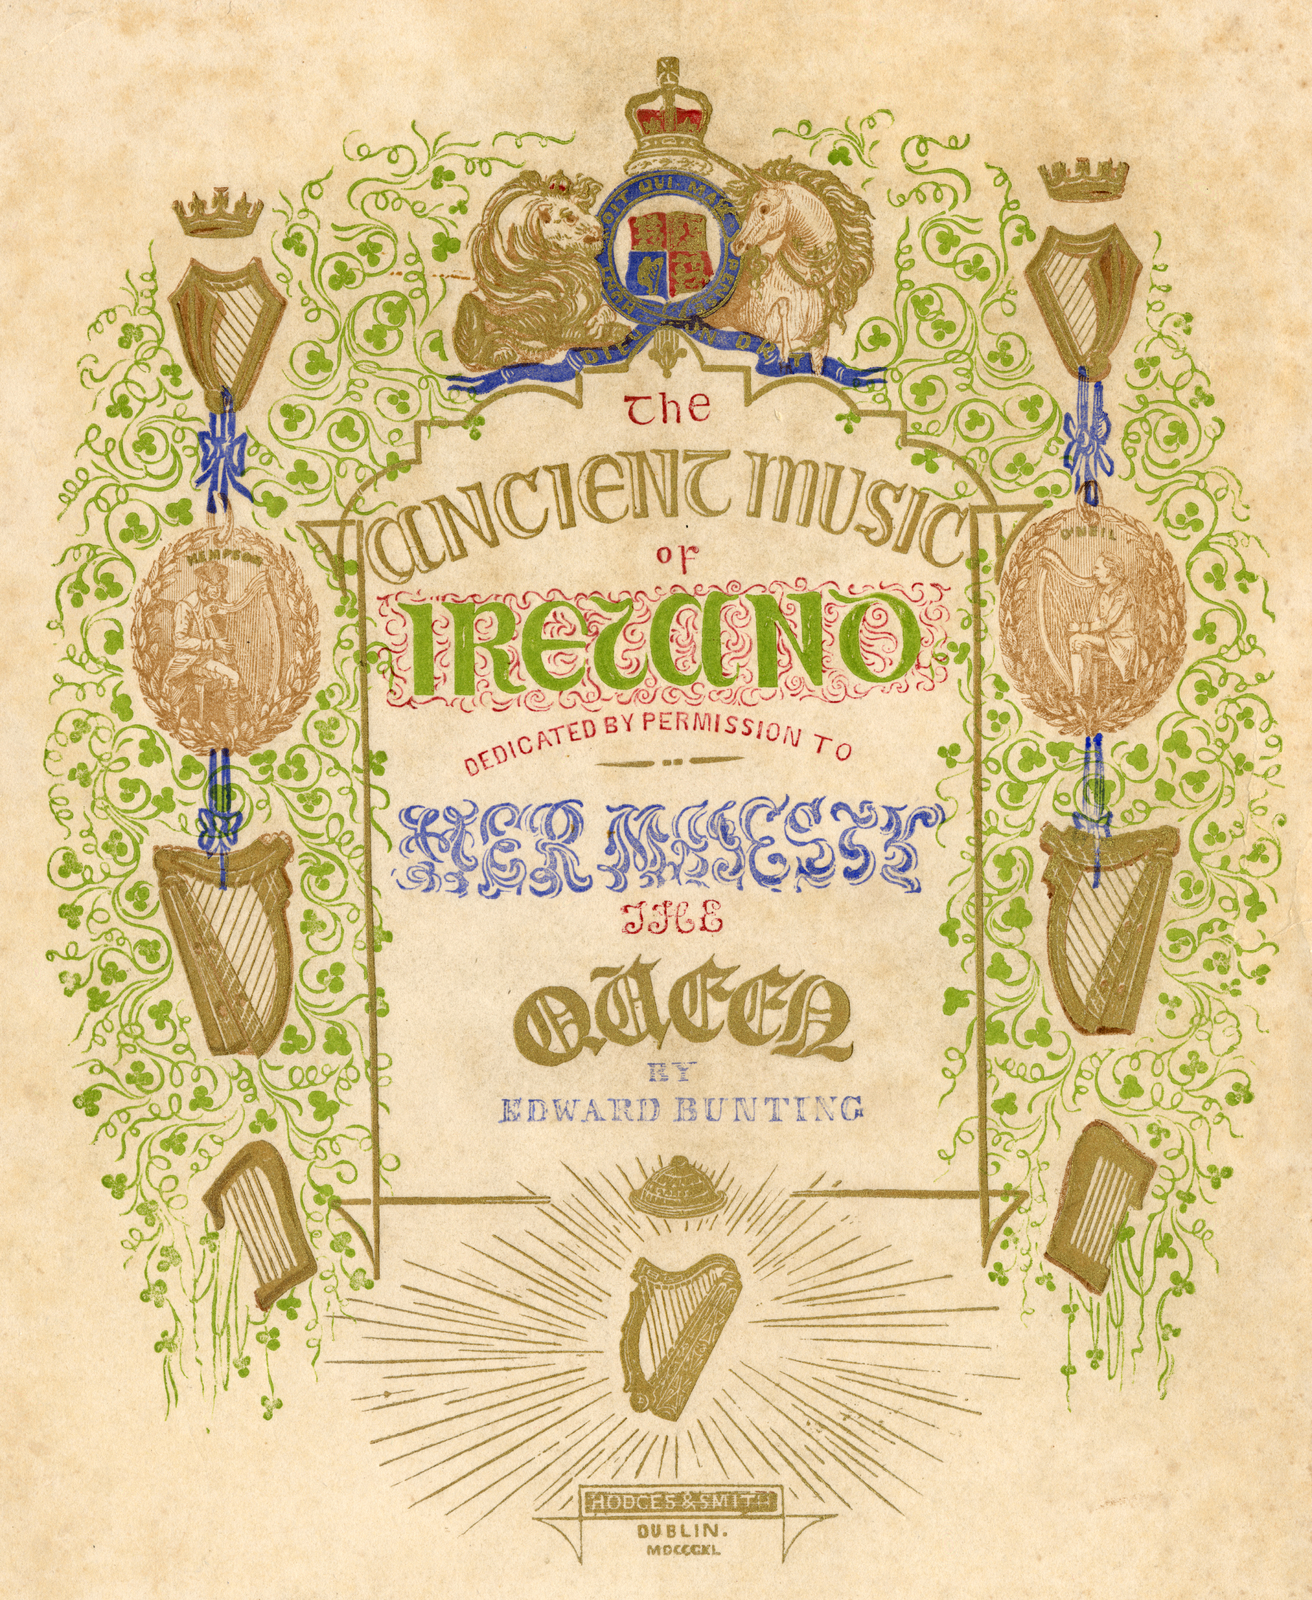 MS 4/35/45 Loose plate, title page of Bunting's 1840 publication 'The Ancient Music of Ireland'